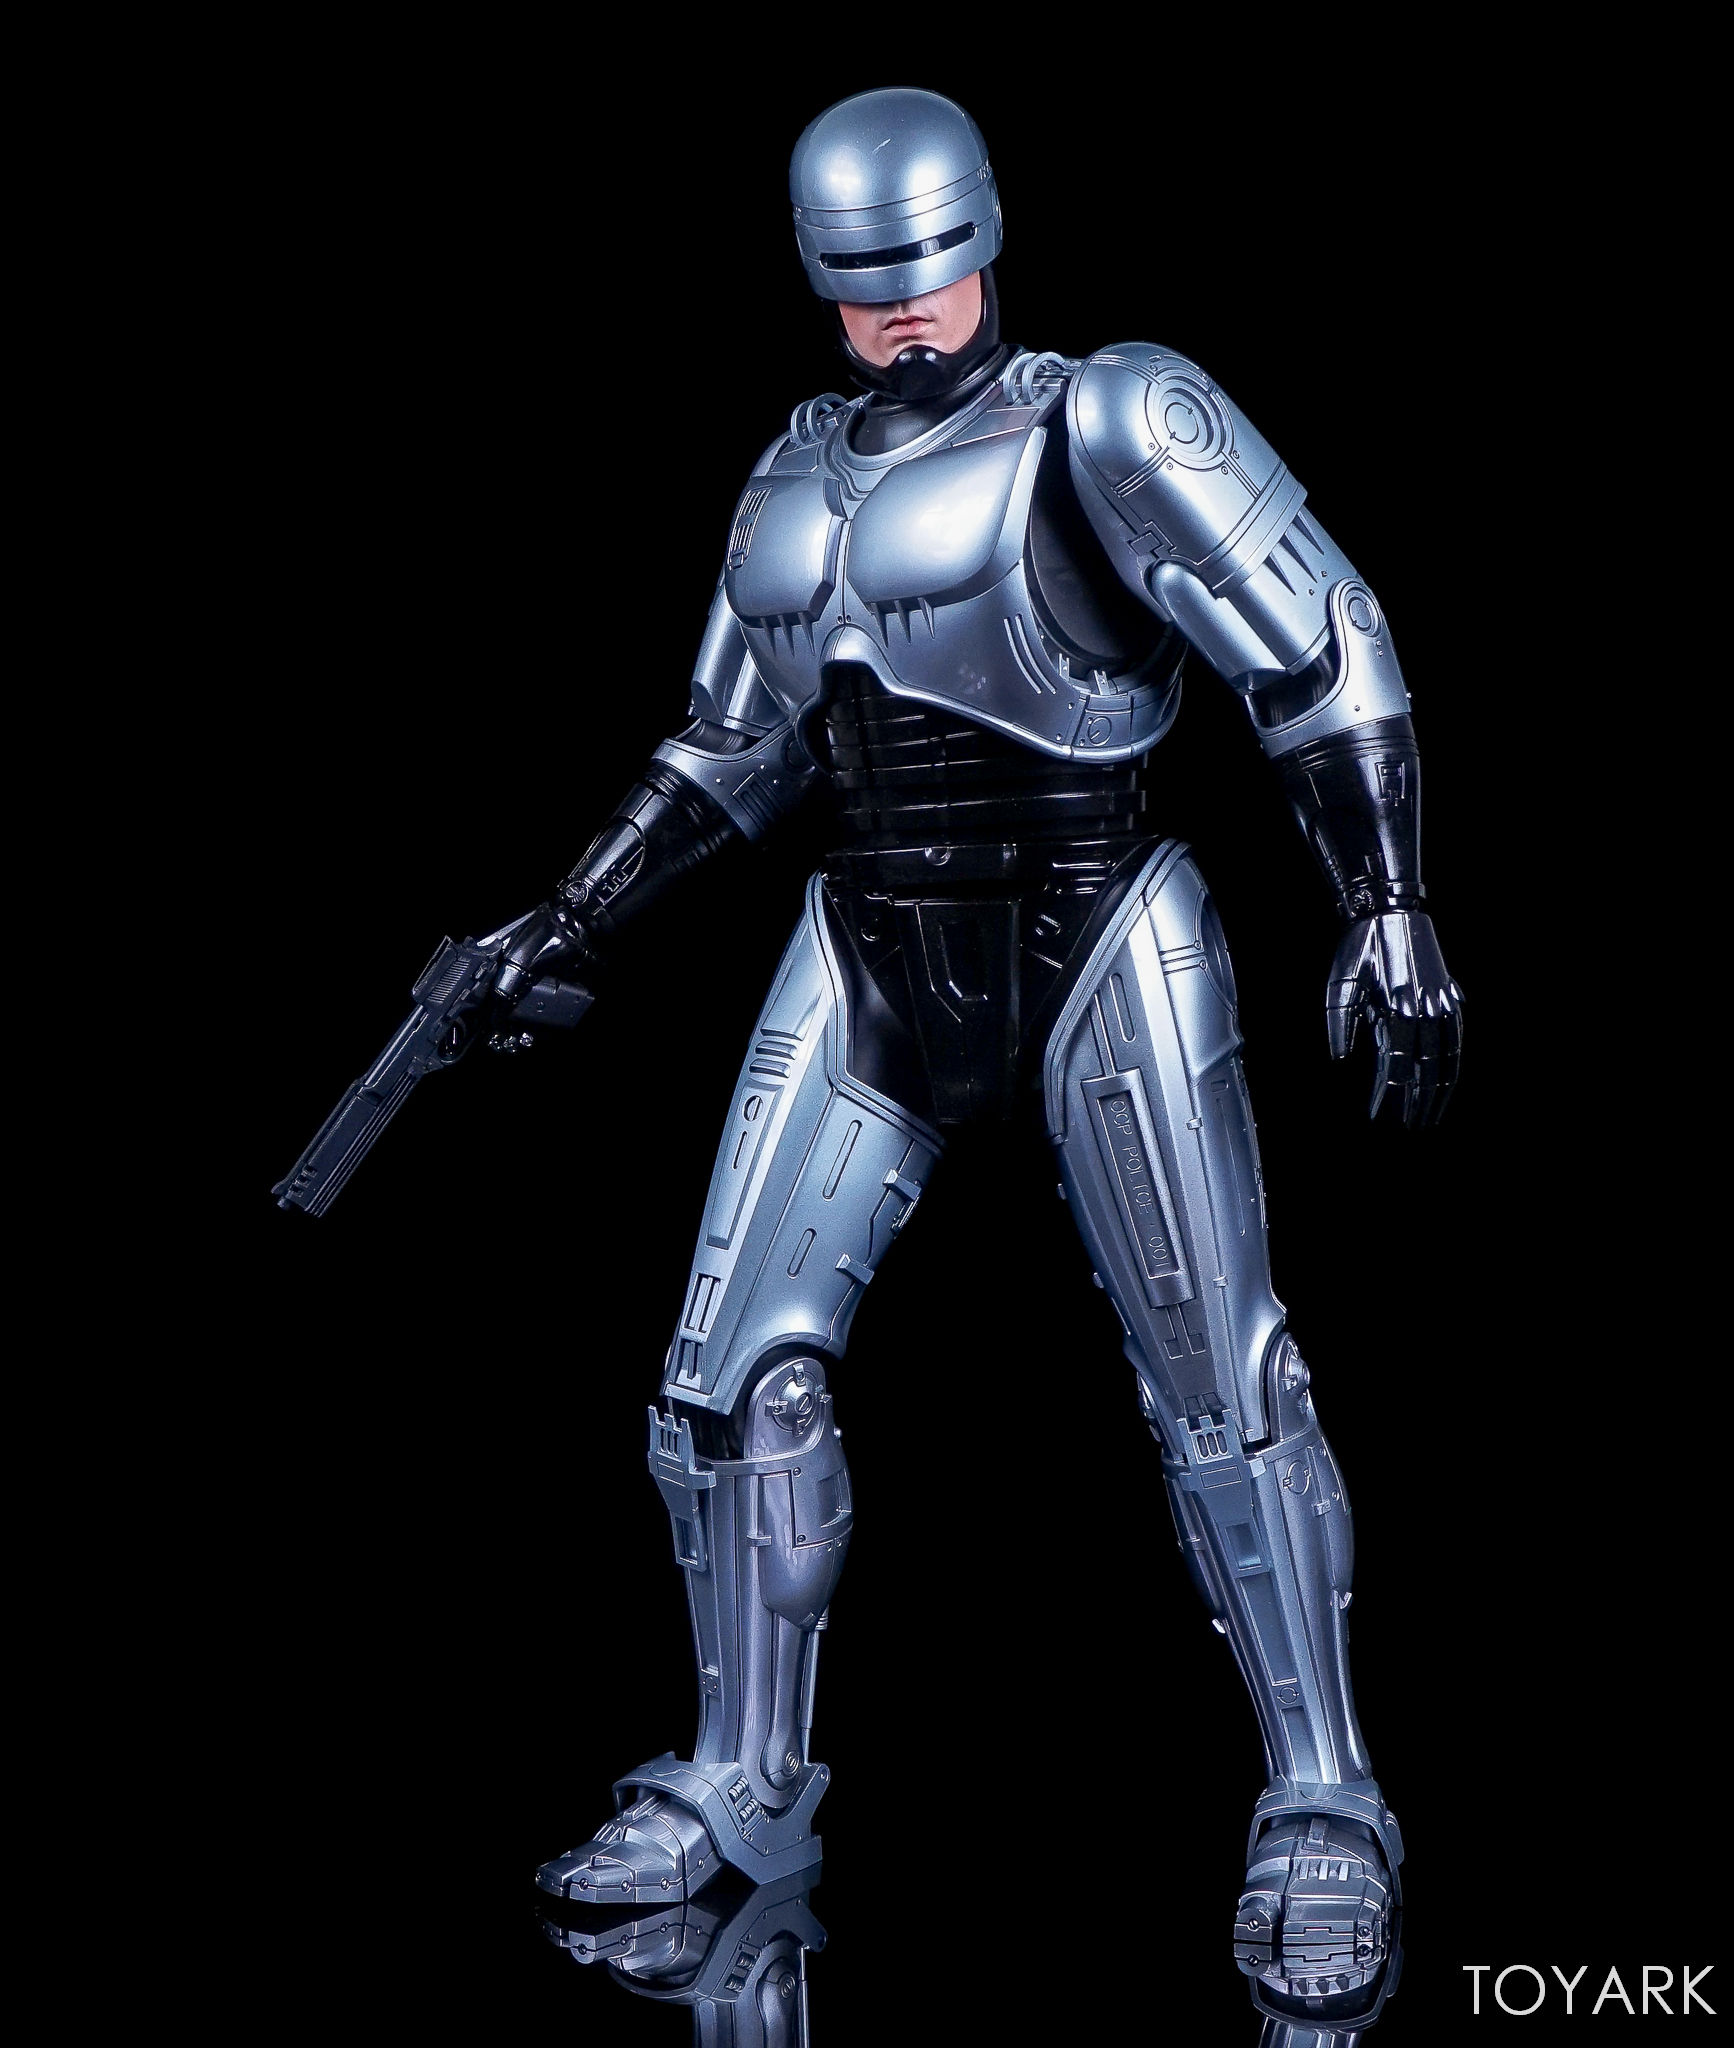 http://news.toyark.com/wp-content/uploads/sites/4/2017/07/Enterbay-Robocop-3-HD-Masterpiece-005.jpg